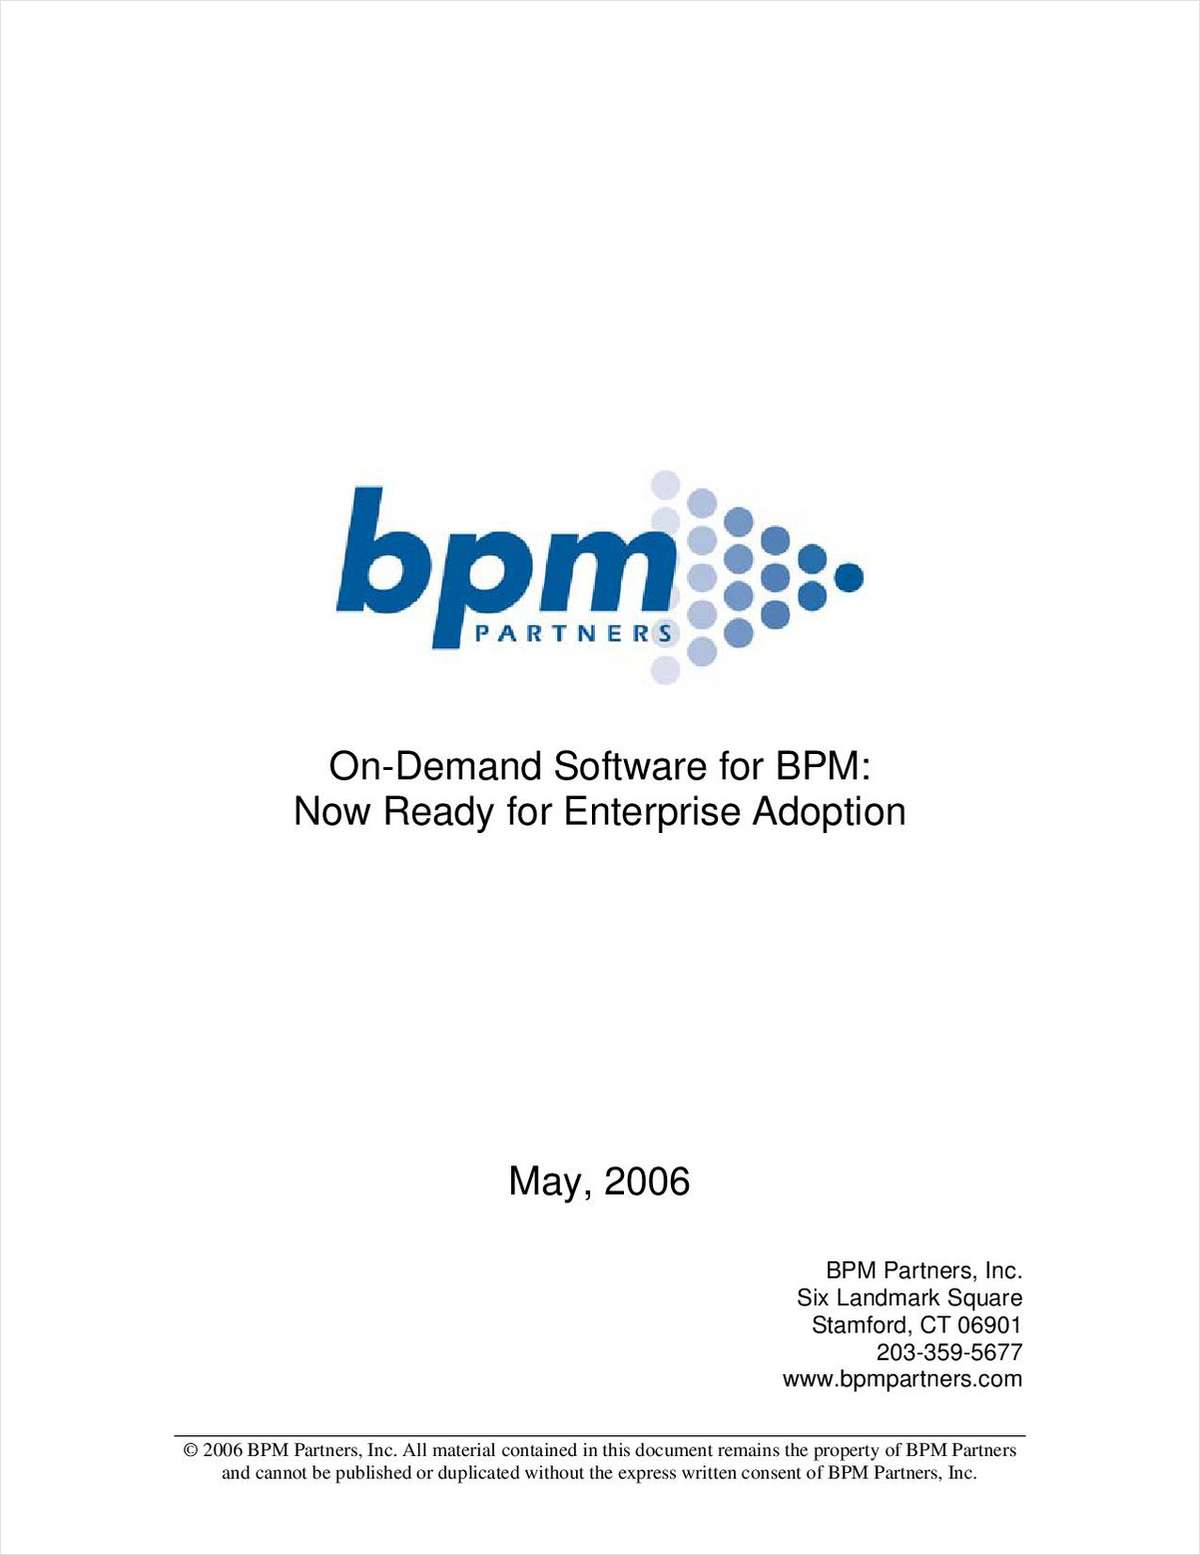 On-Demand Software for BPM: Now Ready for Enterprise Adoption